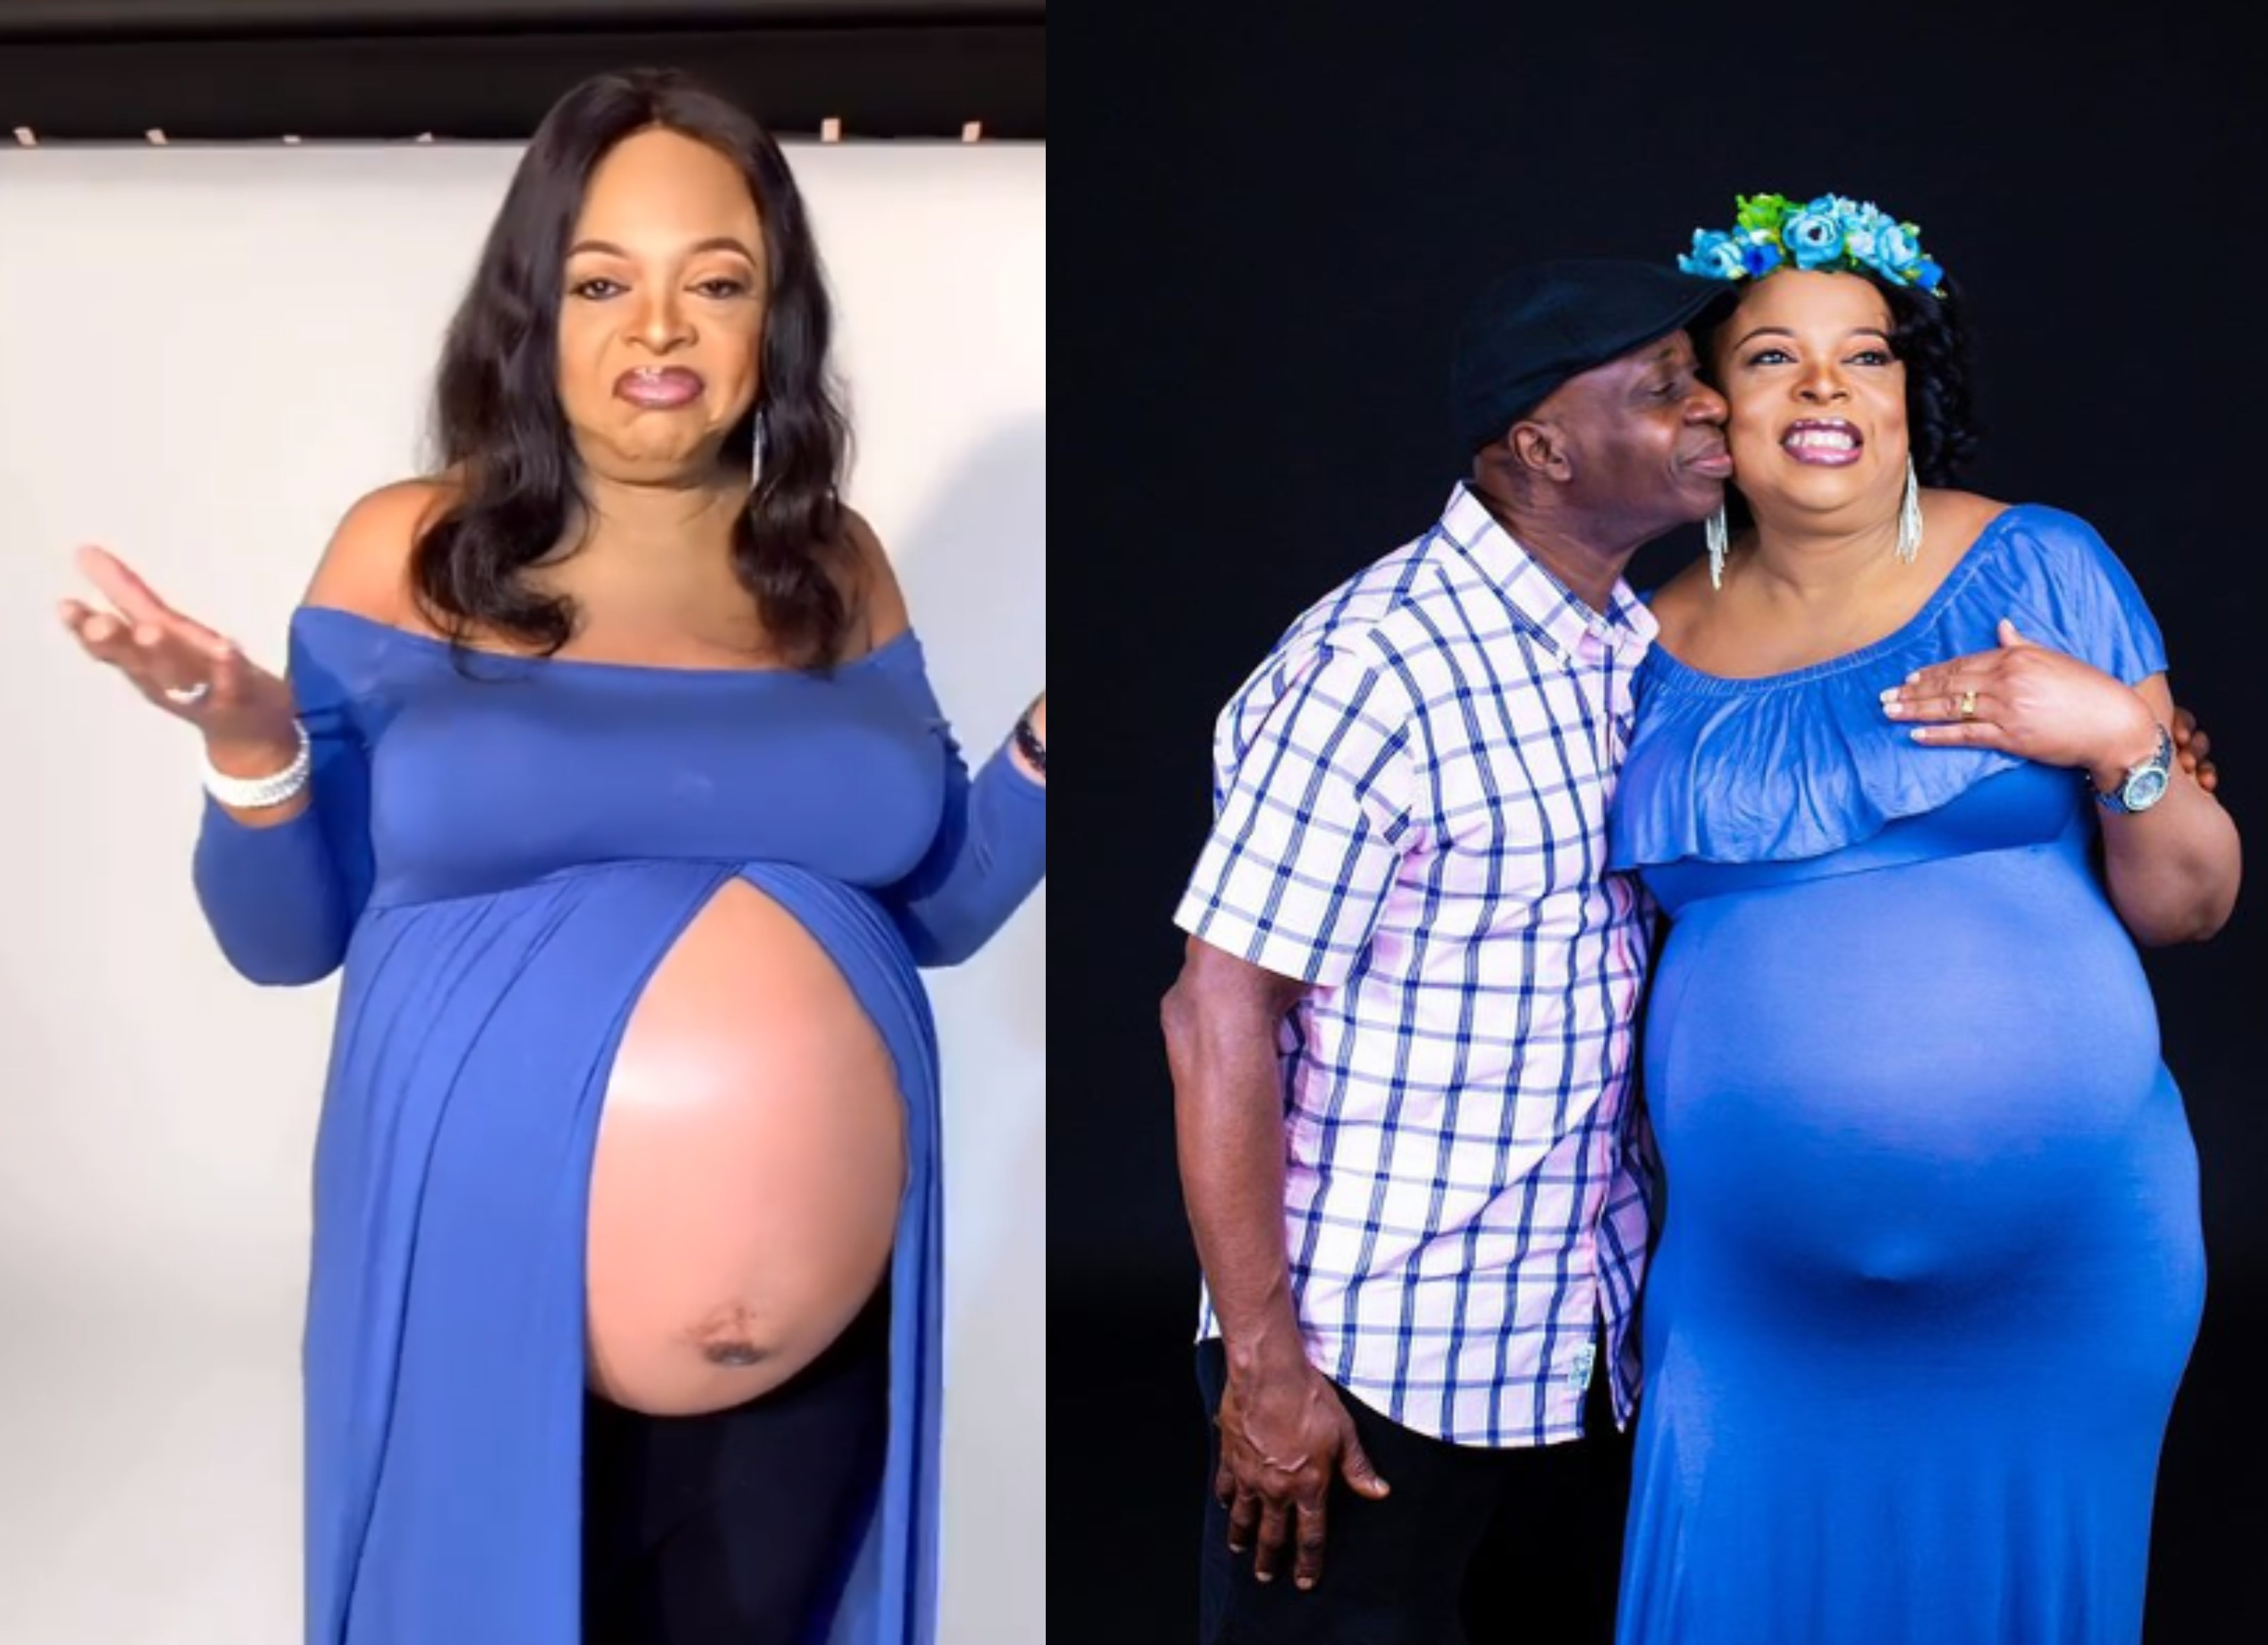 54-year-old Nigerian woman welcomes her first babies with her husband (video)